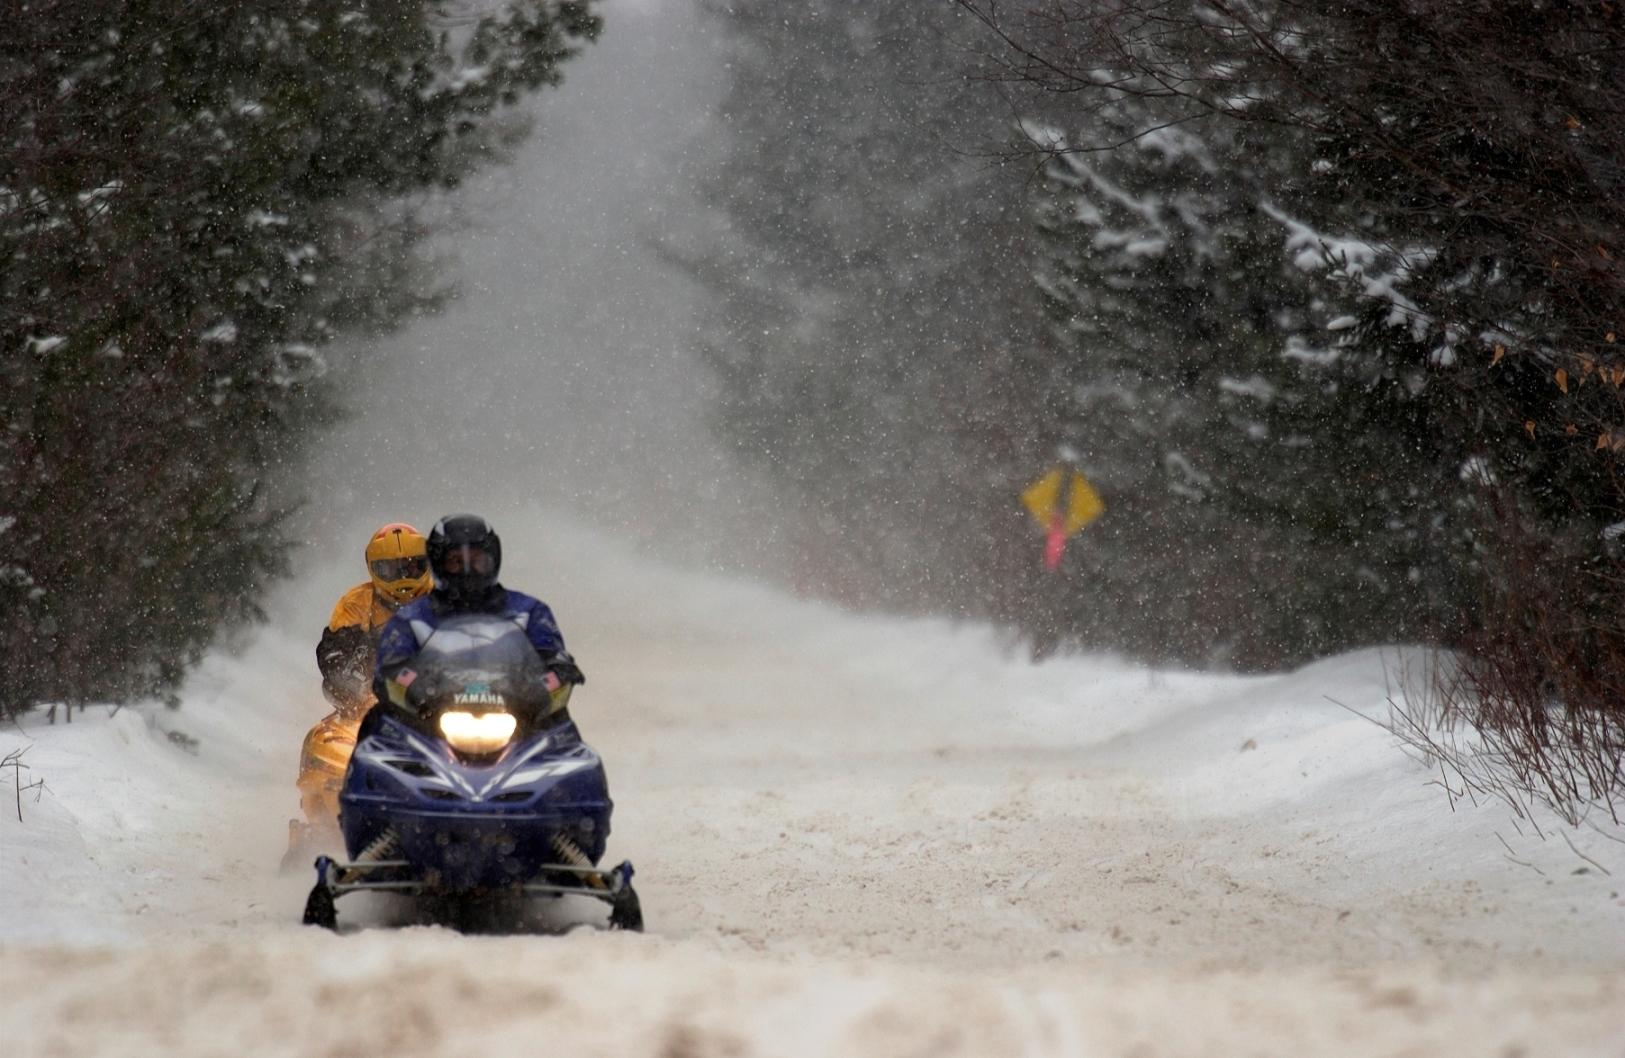 A couple of riders get a chance to enjoy a Michigan snowmobile ride.